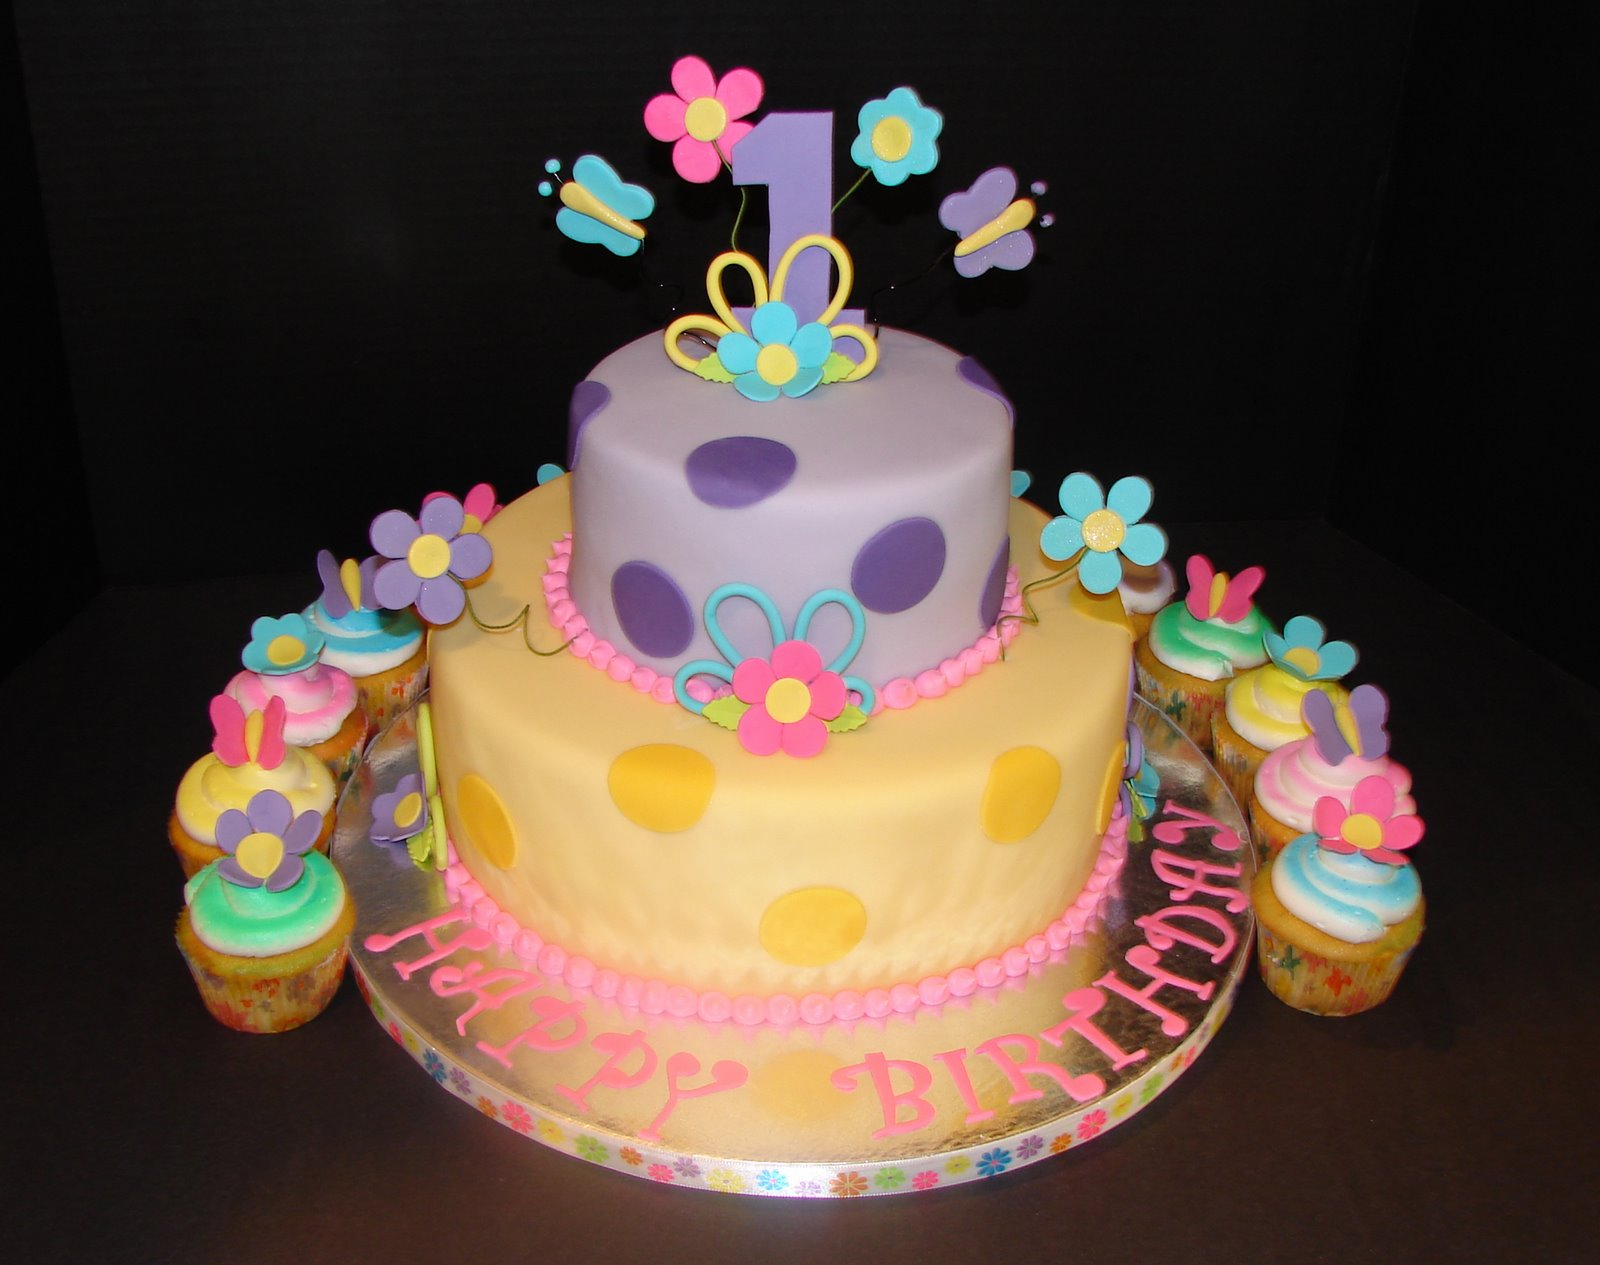 Birthday cake images for girls clip art pictures pics with for 1st birthday cake decoration